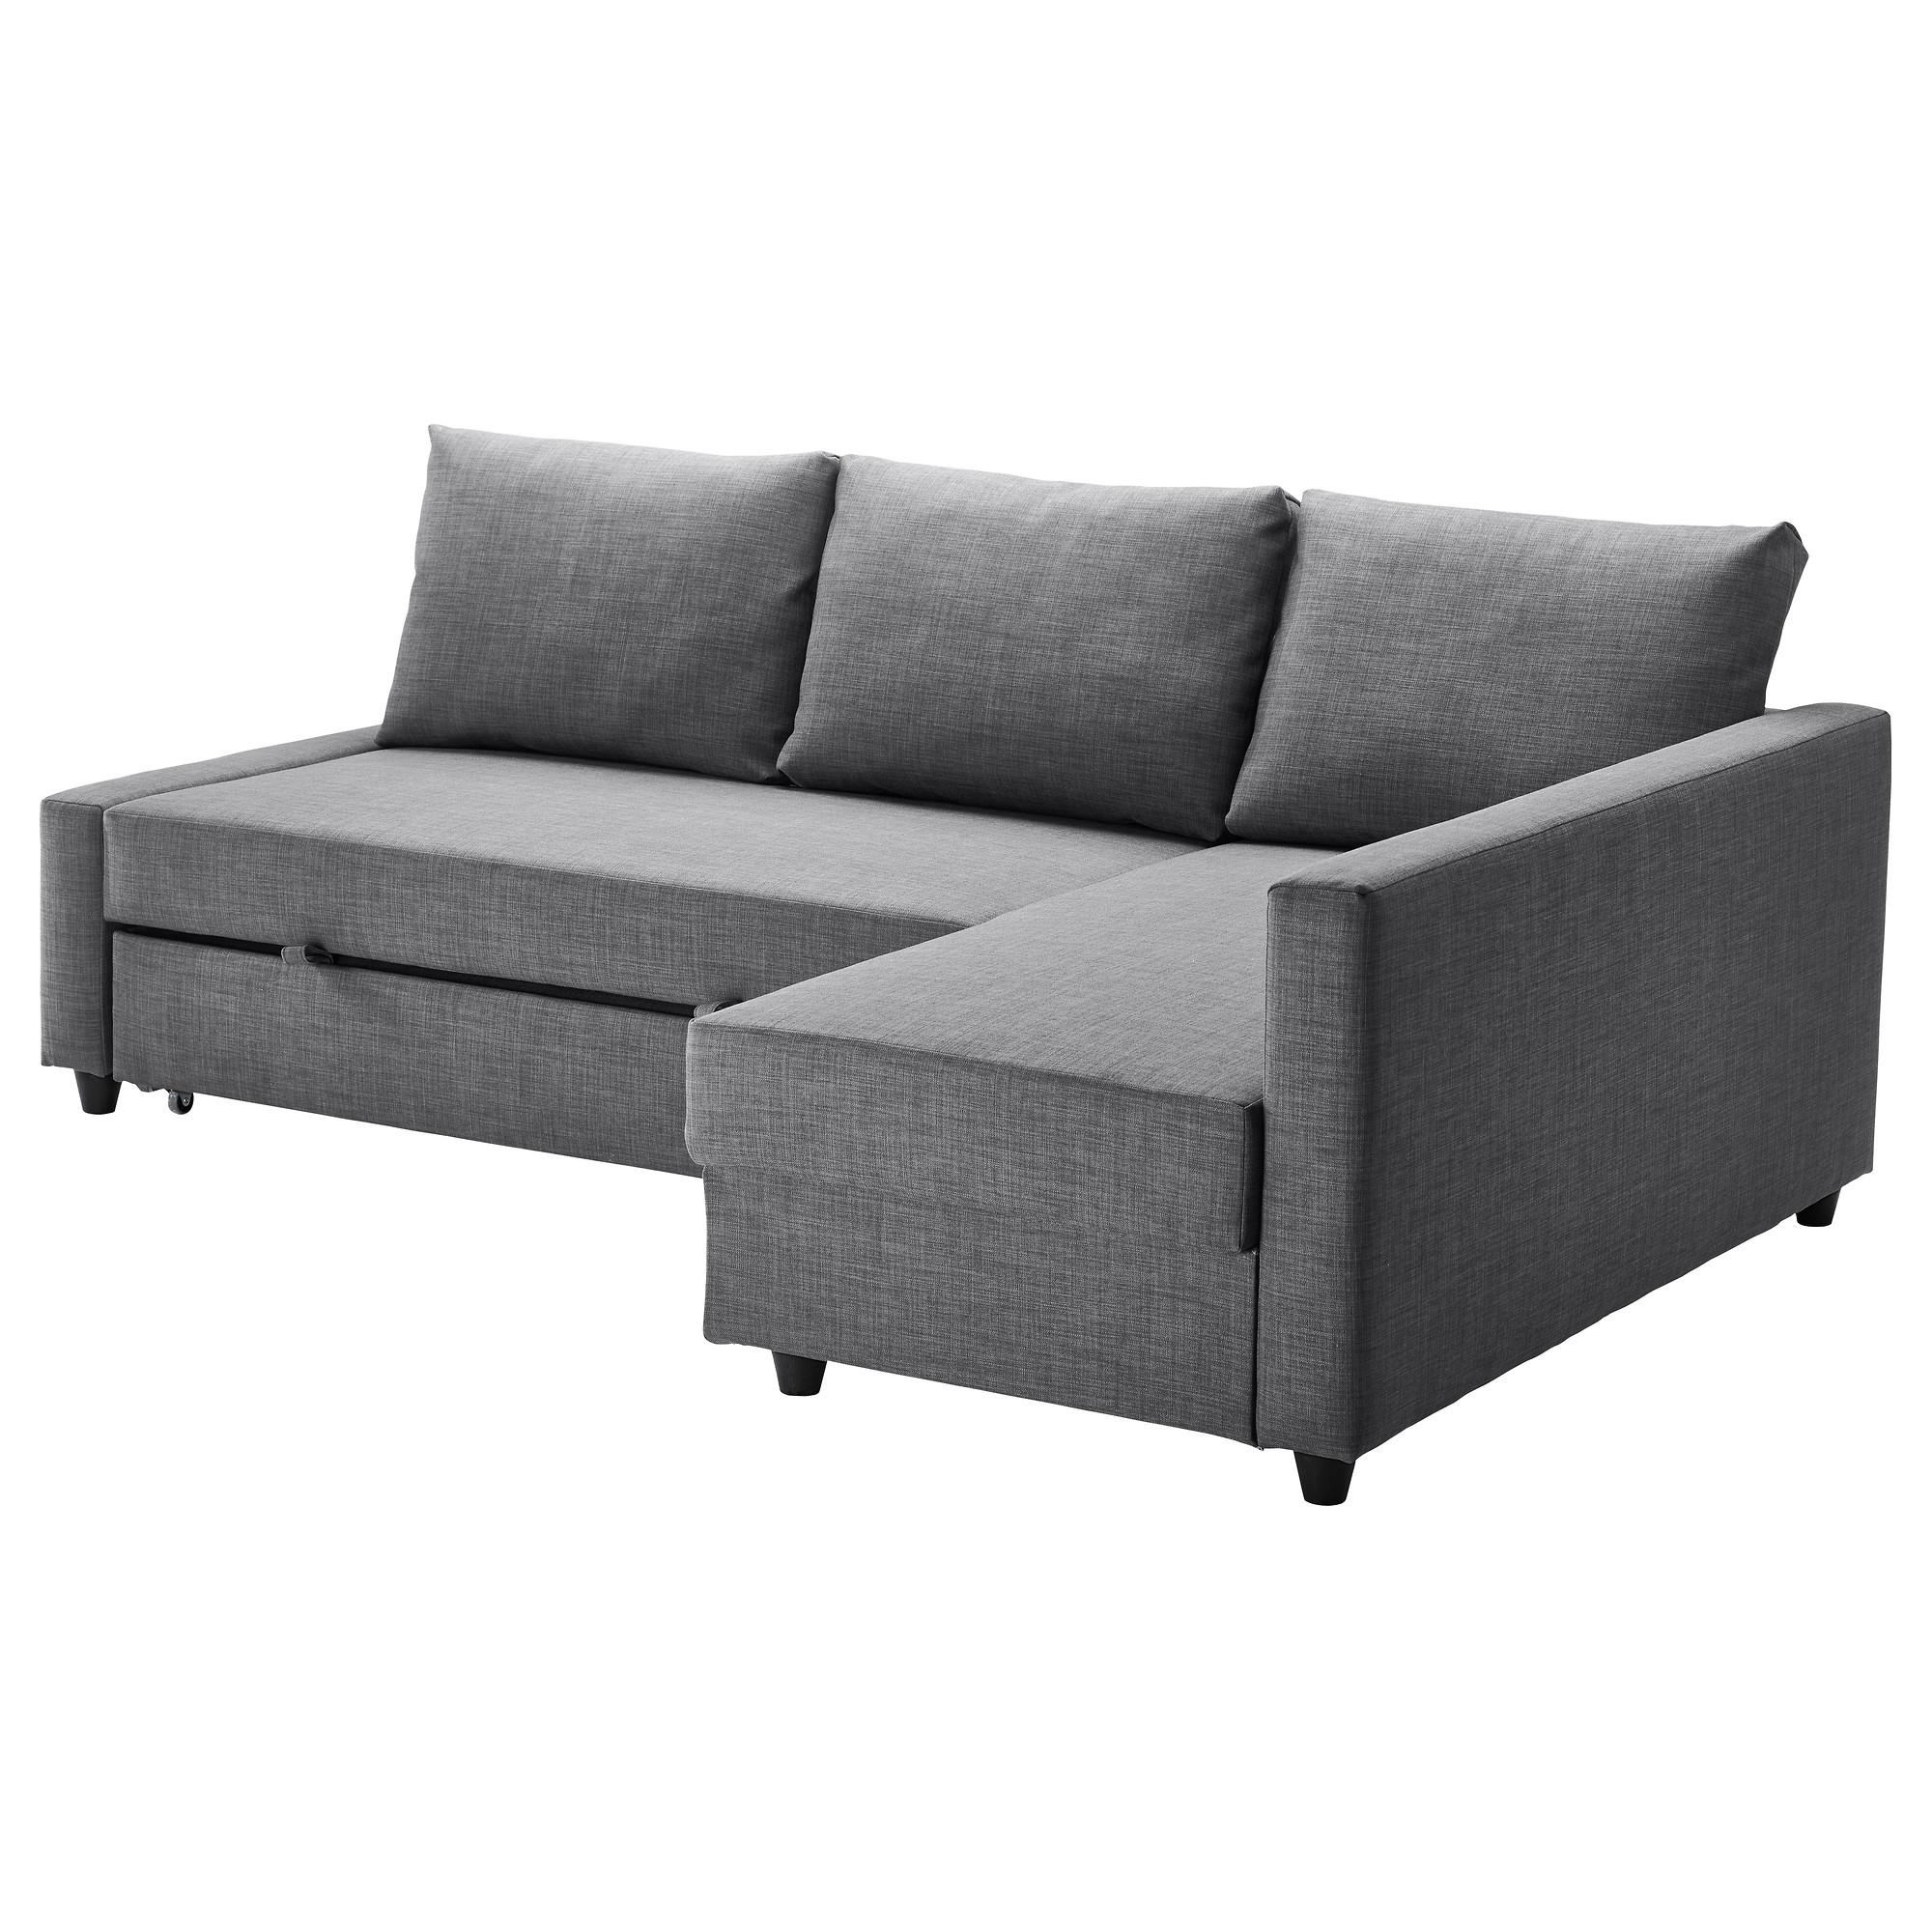 Sofa Beds & Futons – Ikea Throughout Ikea Sectional Sleeper Sofa (Image 13 of 20)